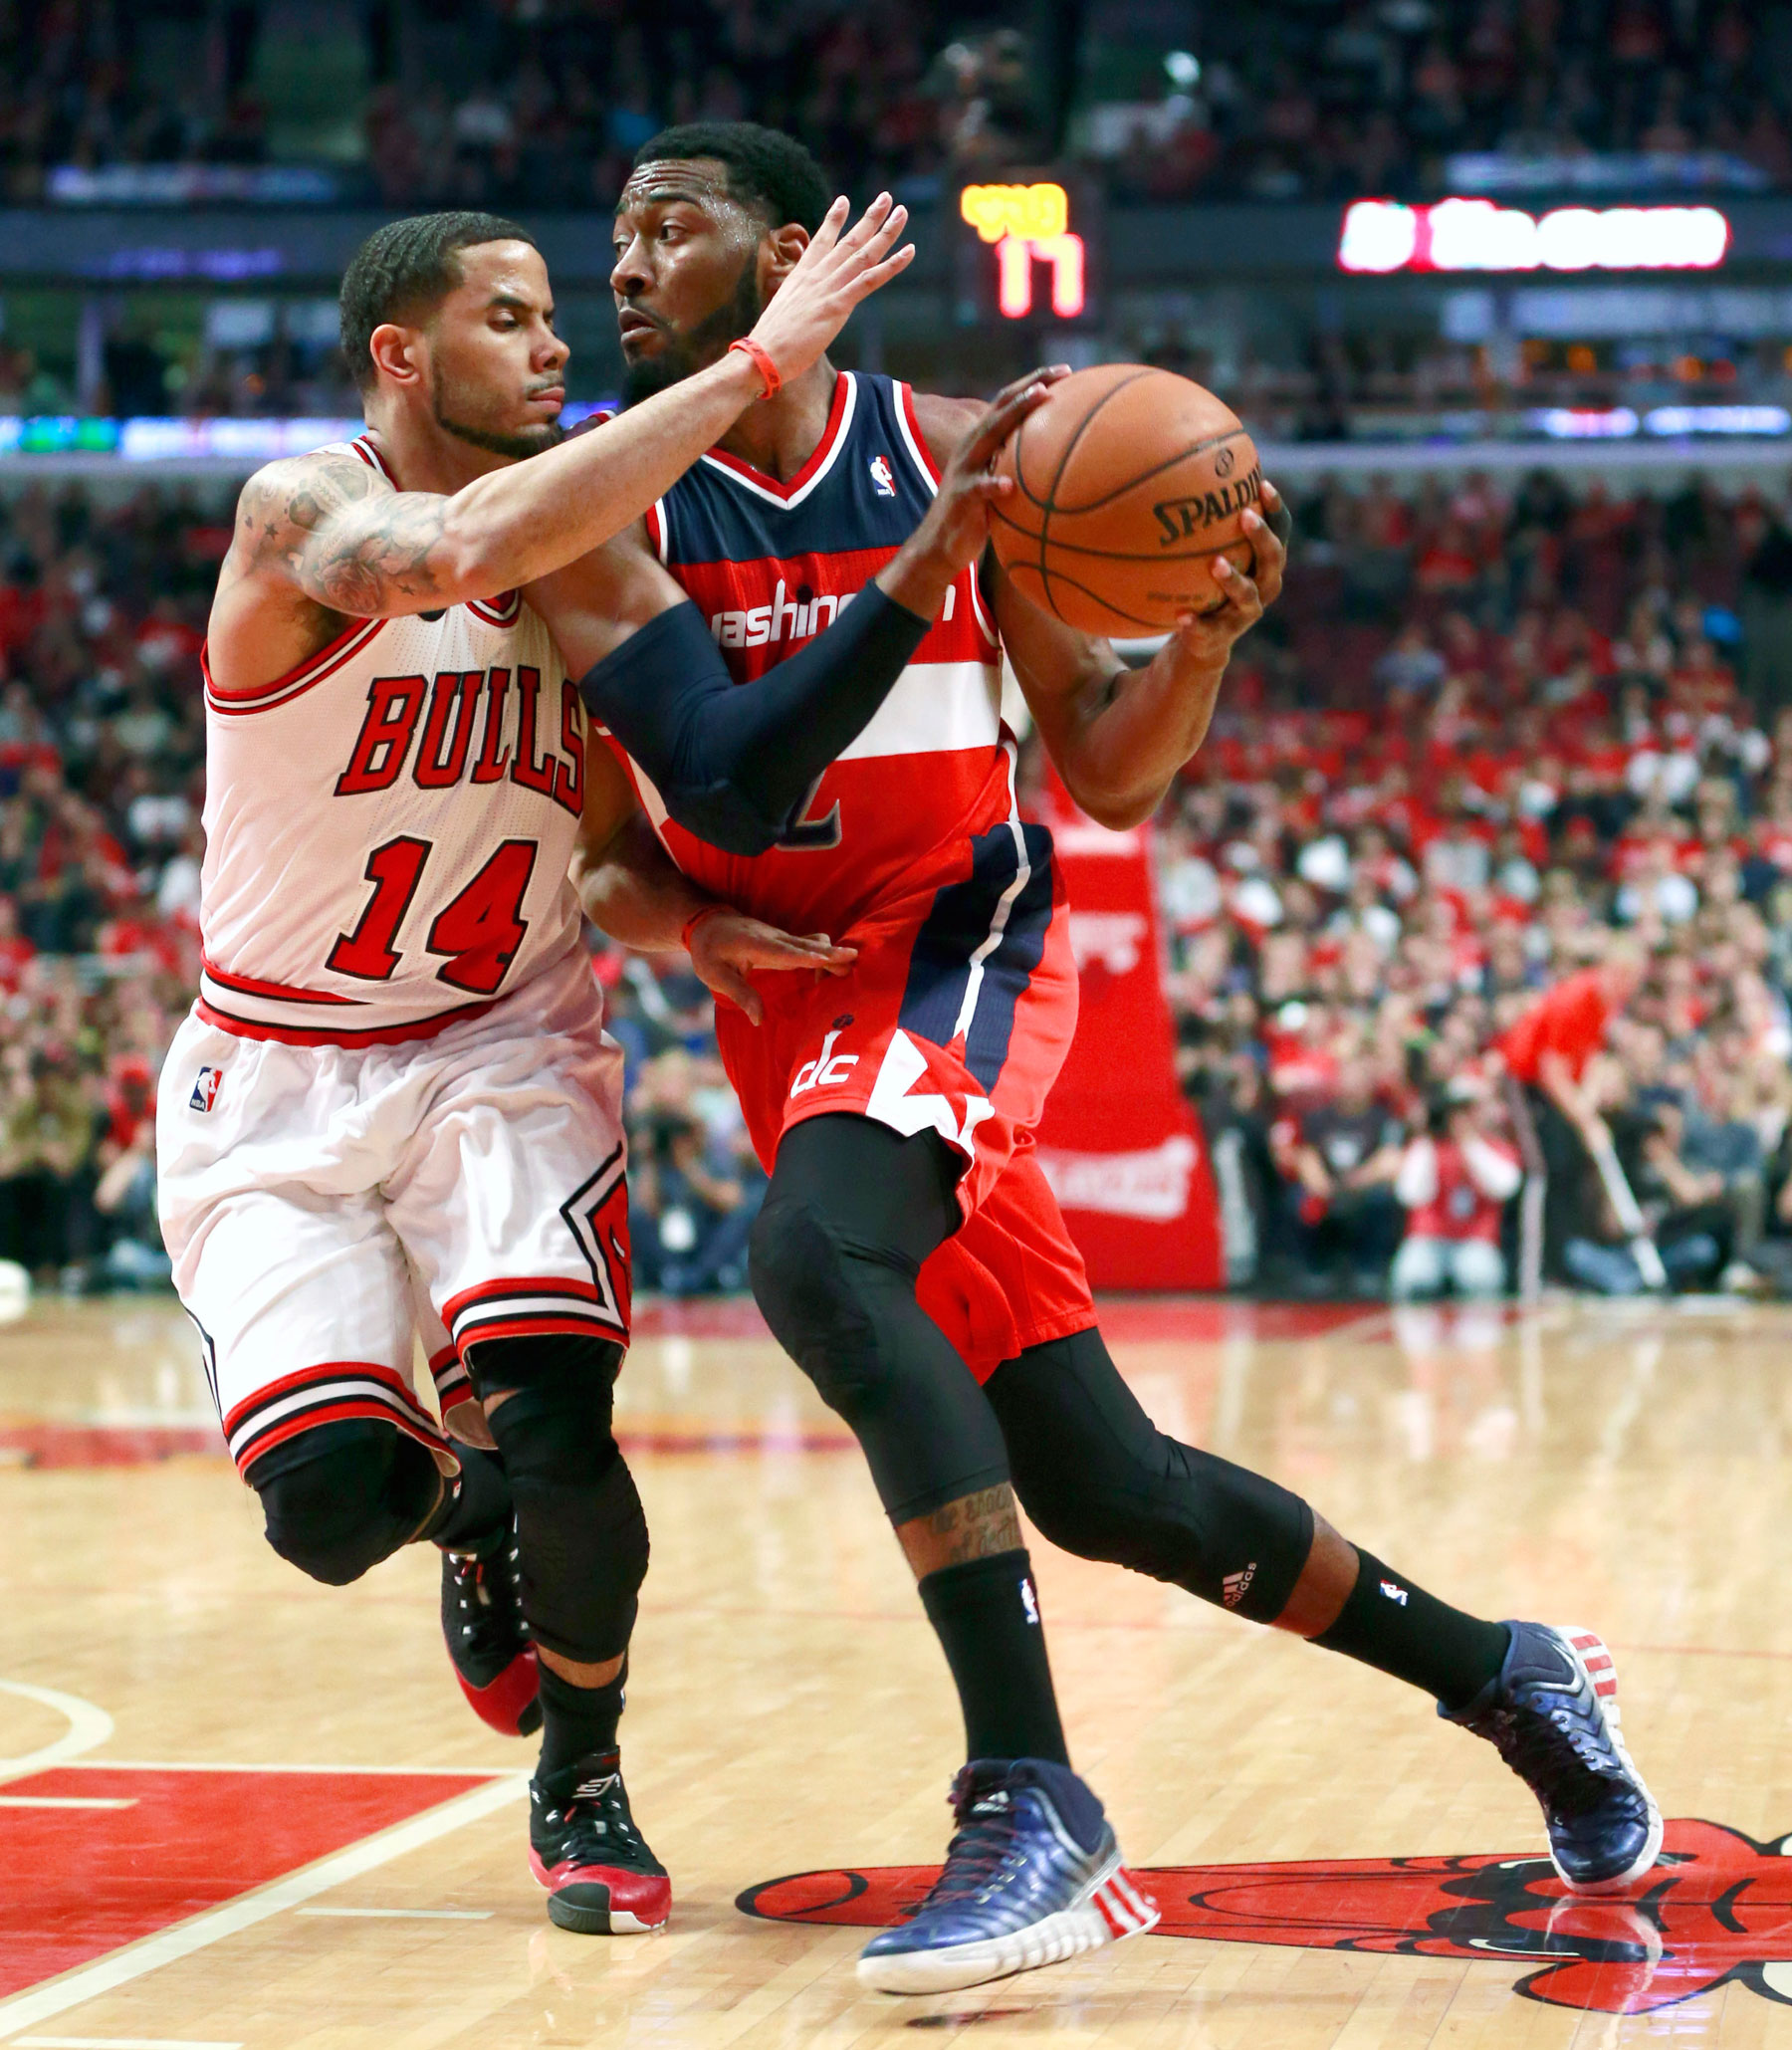 Wizards' success translating to ticket sales